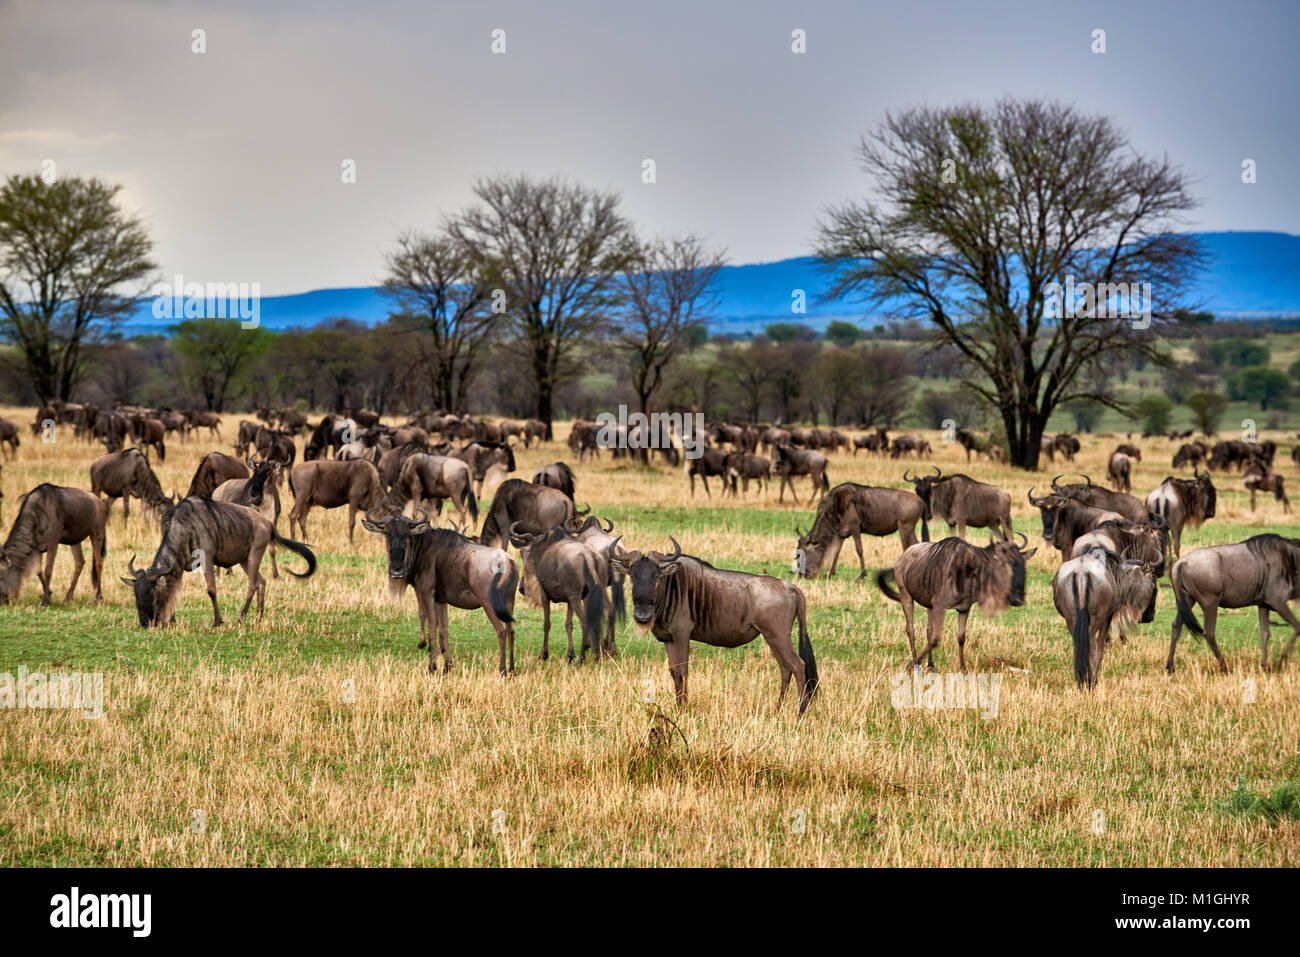 landscape in Serengeti National Park with blue wilderbeests, UNESCO world heritage site, Tanzania, Africa - Stock Image